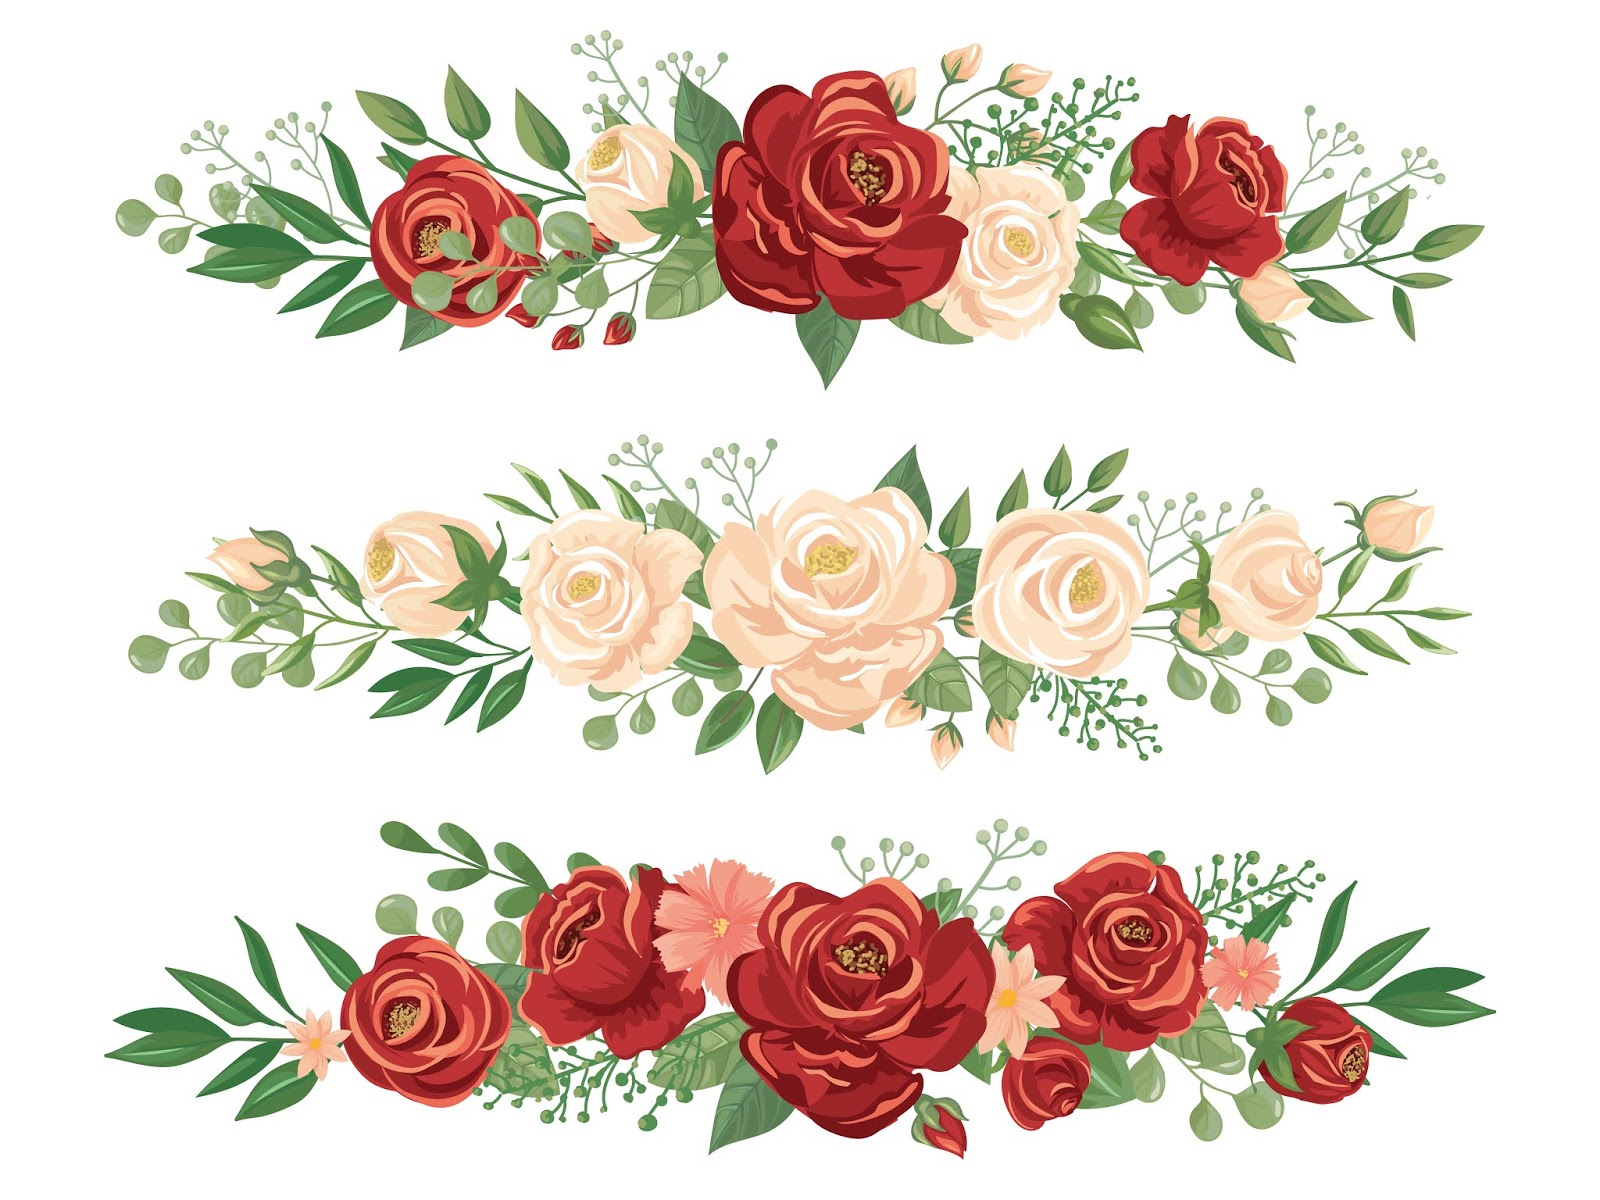 Panoramic Flowers Borders Rose Bud Flower Free Download Vector CDR, AI, EPS and PNG Formats